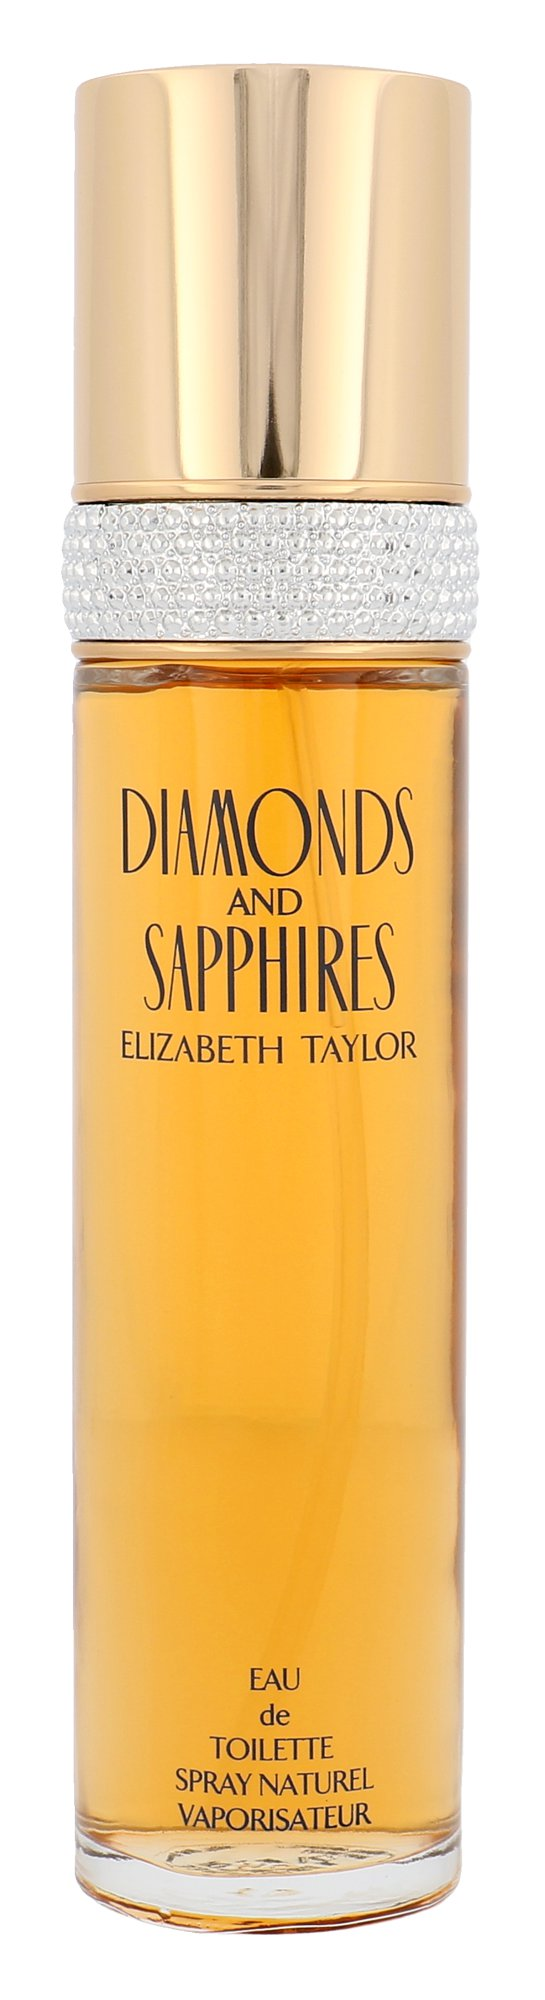 Elizabeth Taylor Diamonds and Saphires, edt 100ml